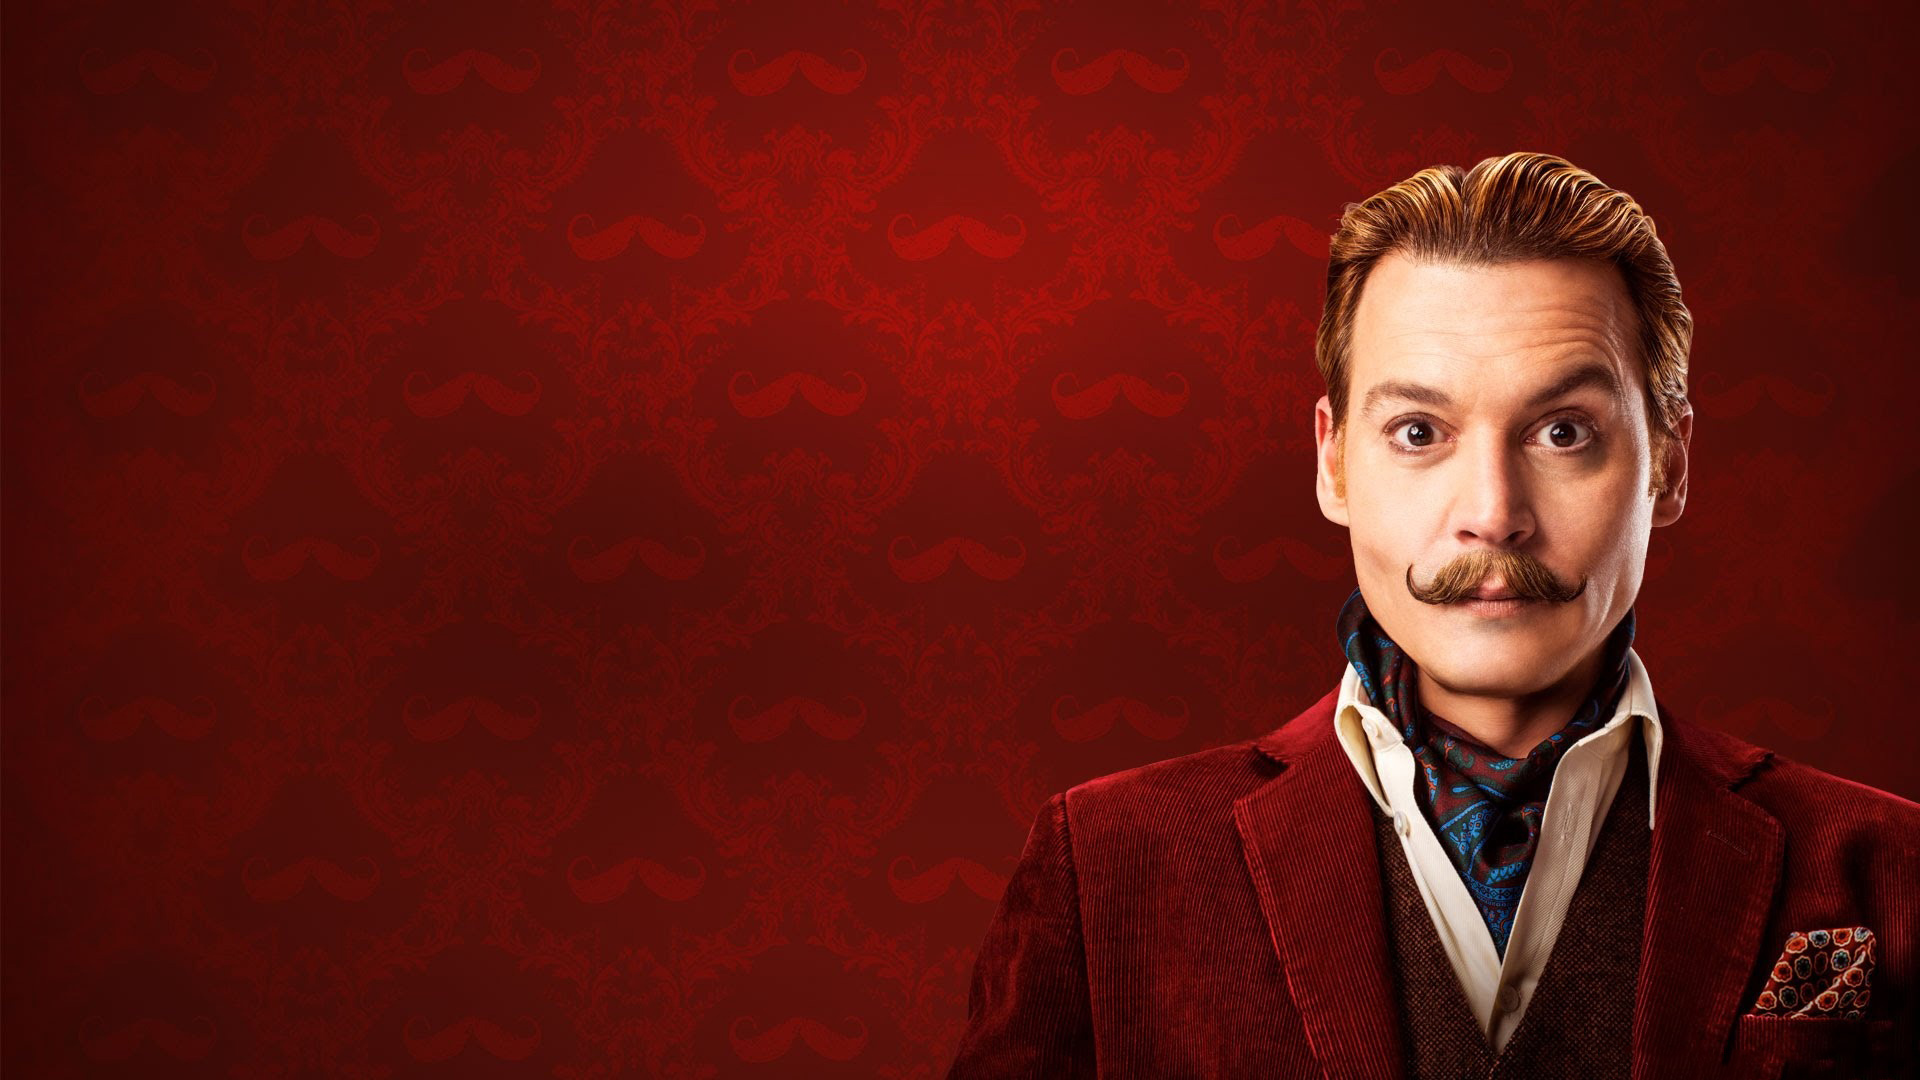 Johnny Depp Wallpapers High Resolution And Quality Download